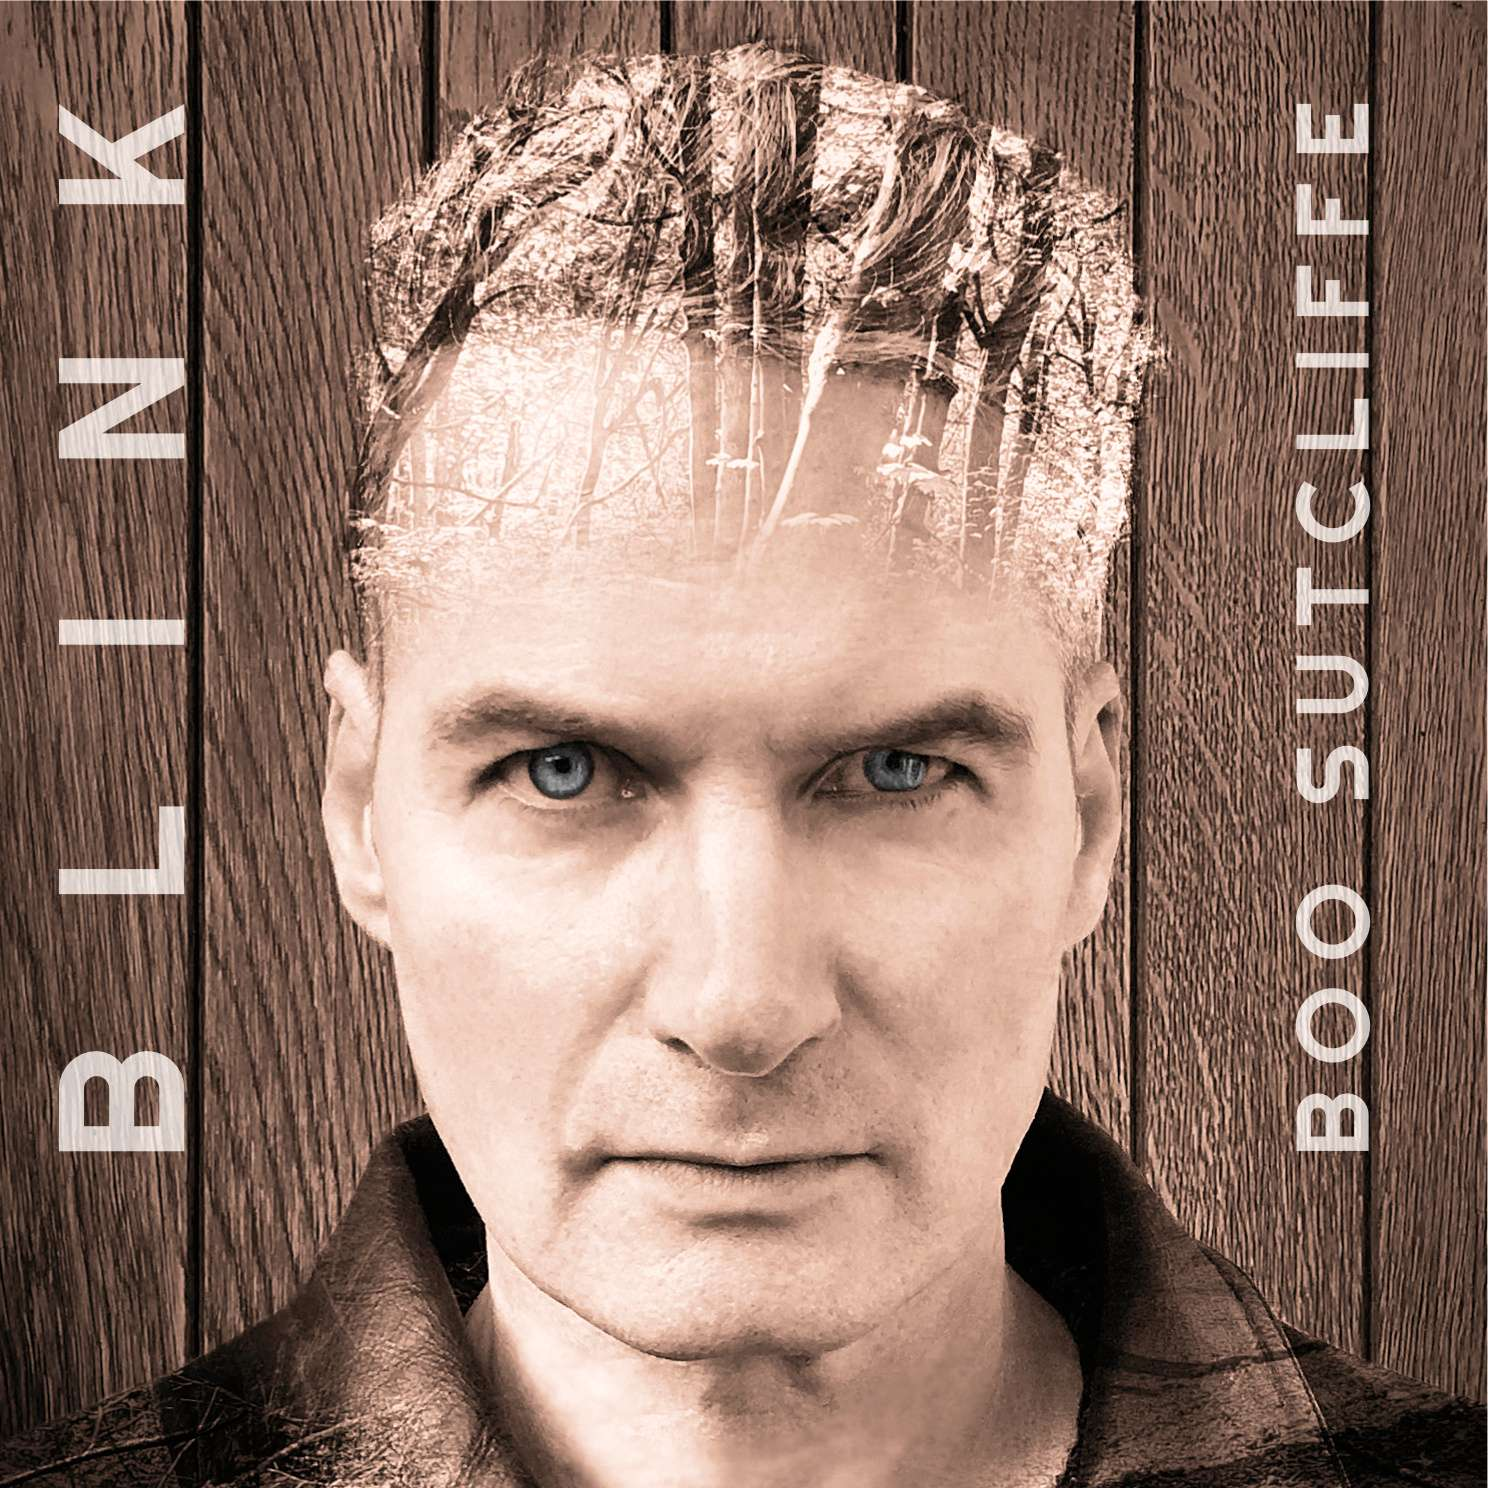 Front cover for 'Blink' album by Boo Sutcliffe.